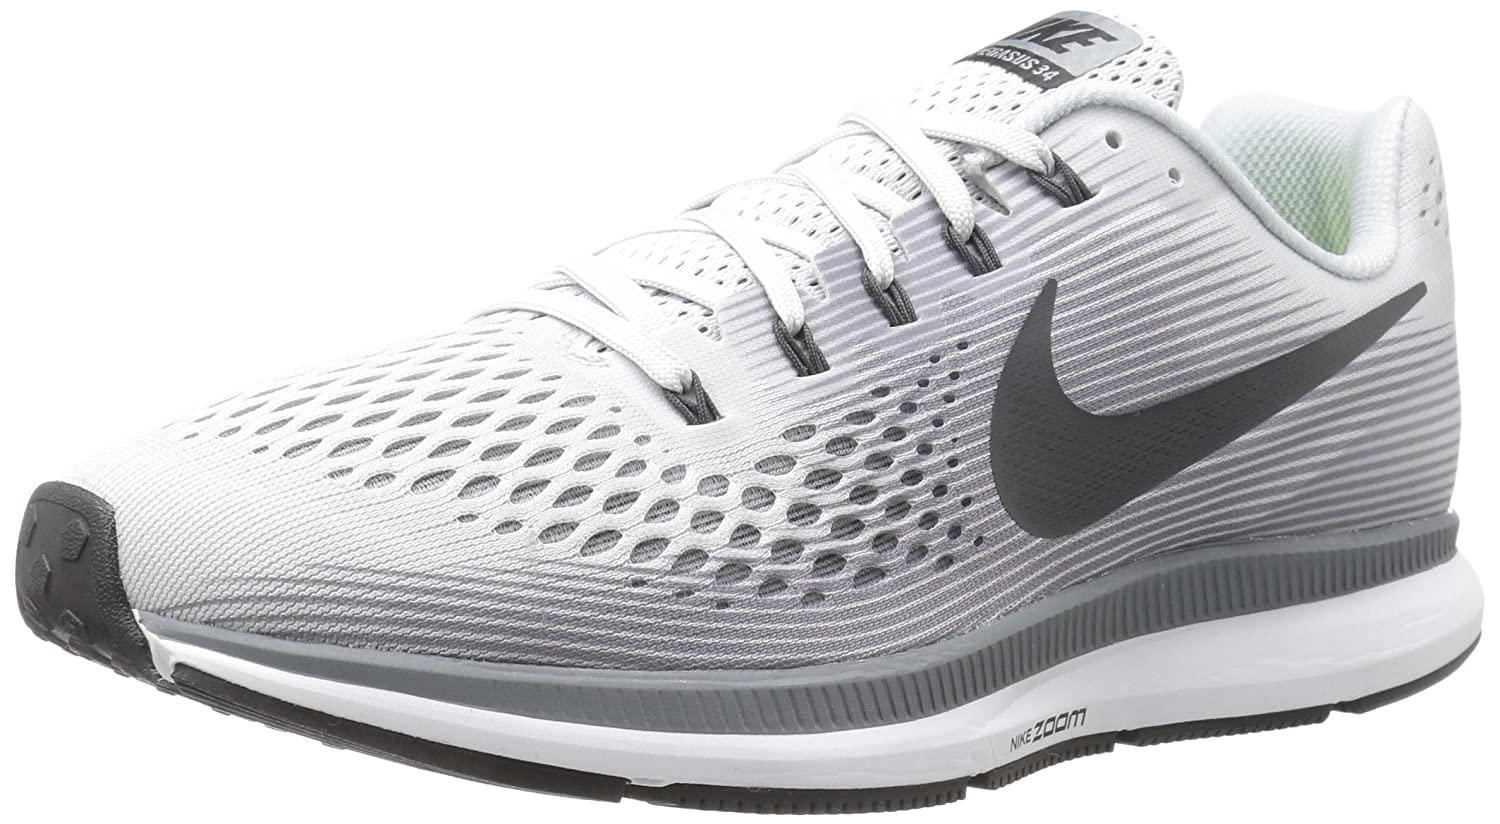 Nike Men's Air Zoom Pegasus 34 Running Shoe Pure PlatinumAnthracite Size 9.5 M US